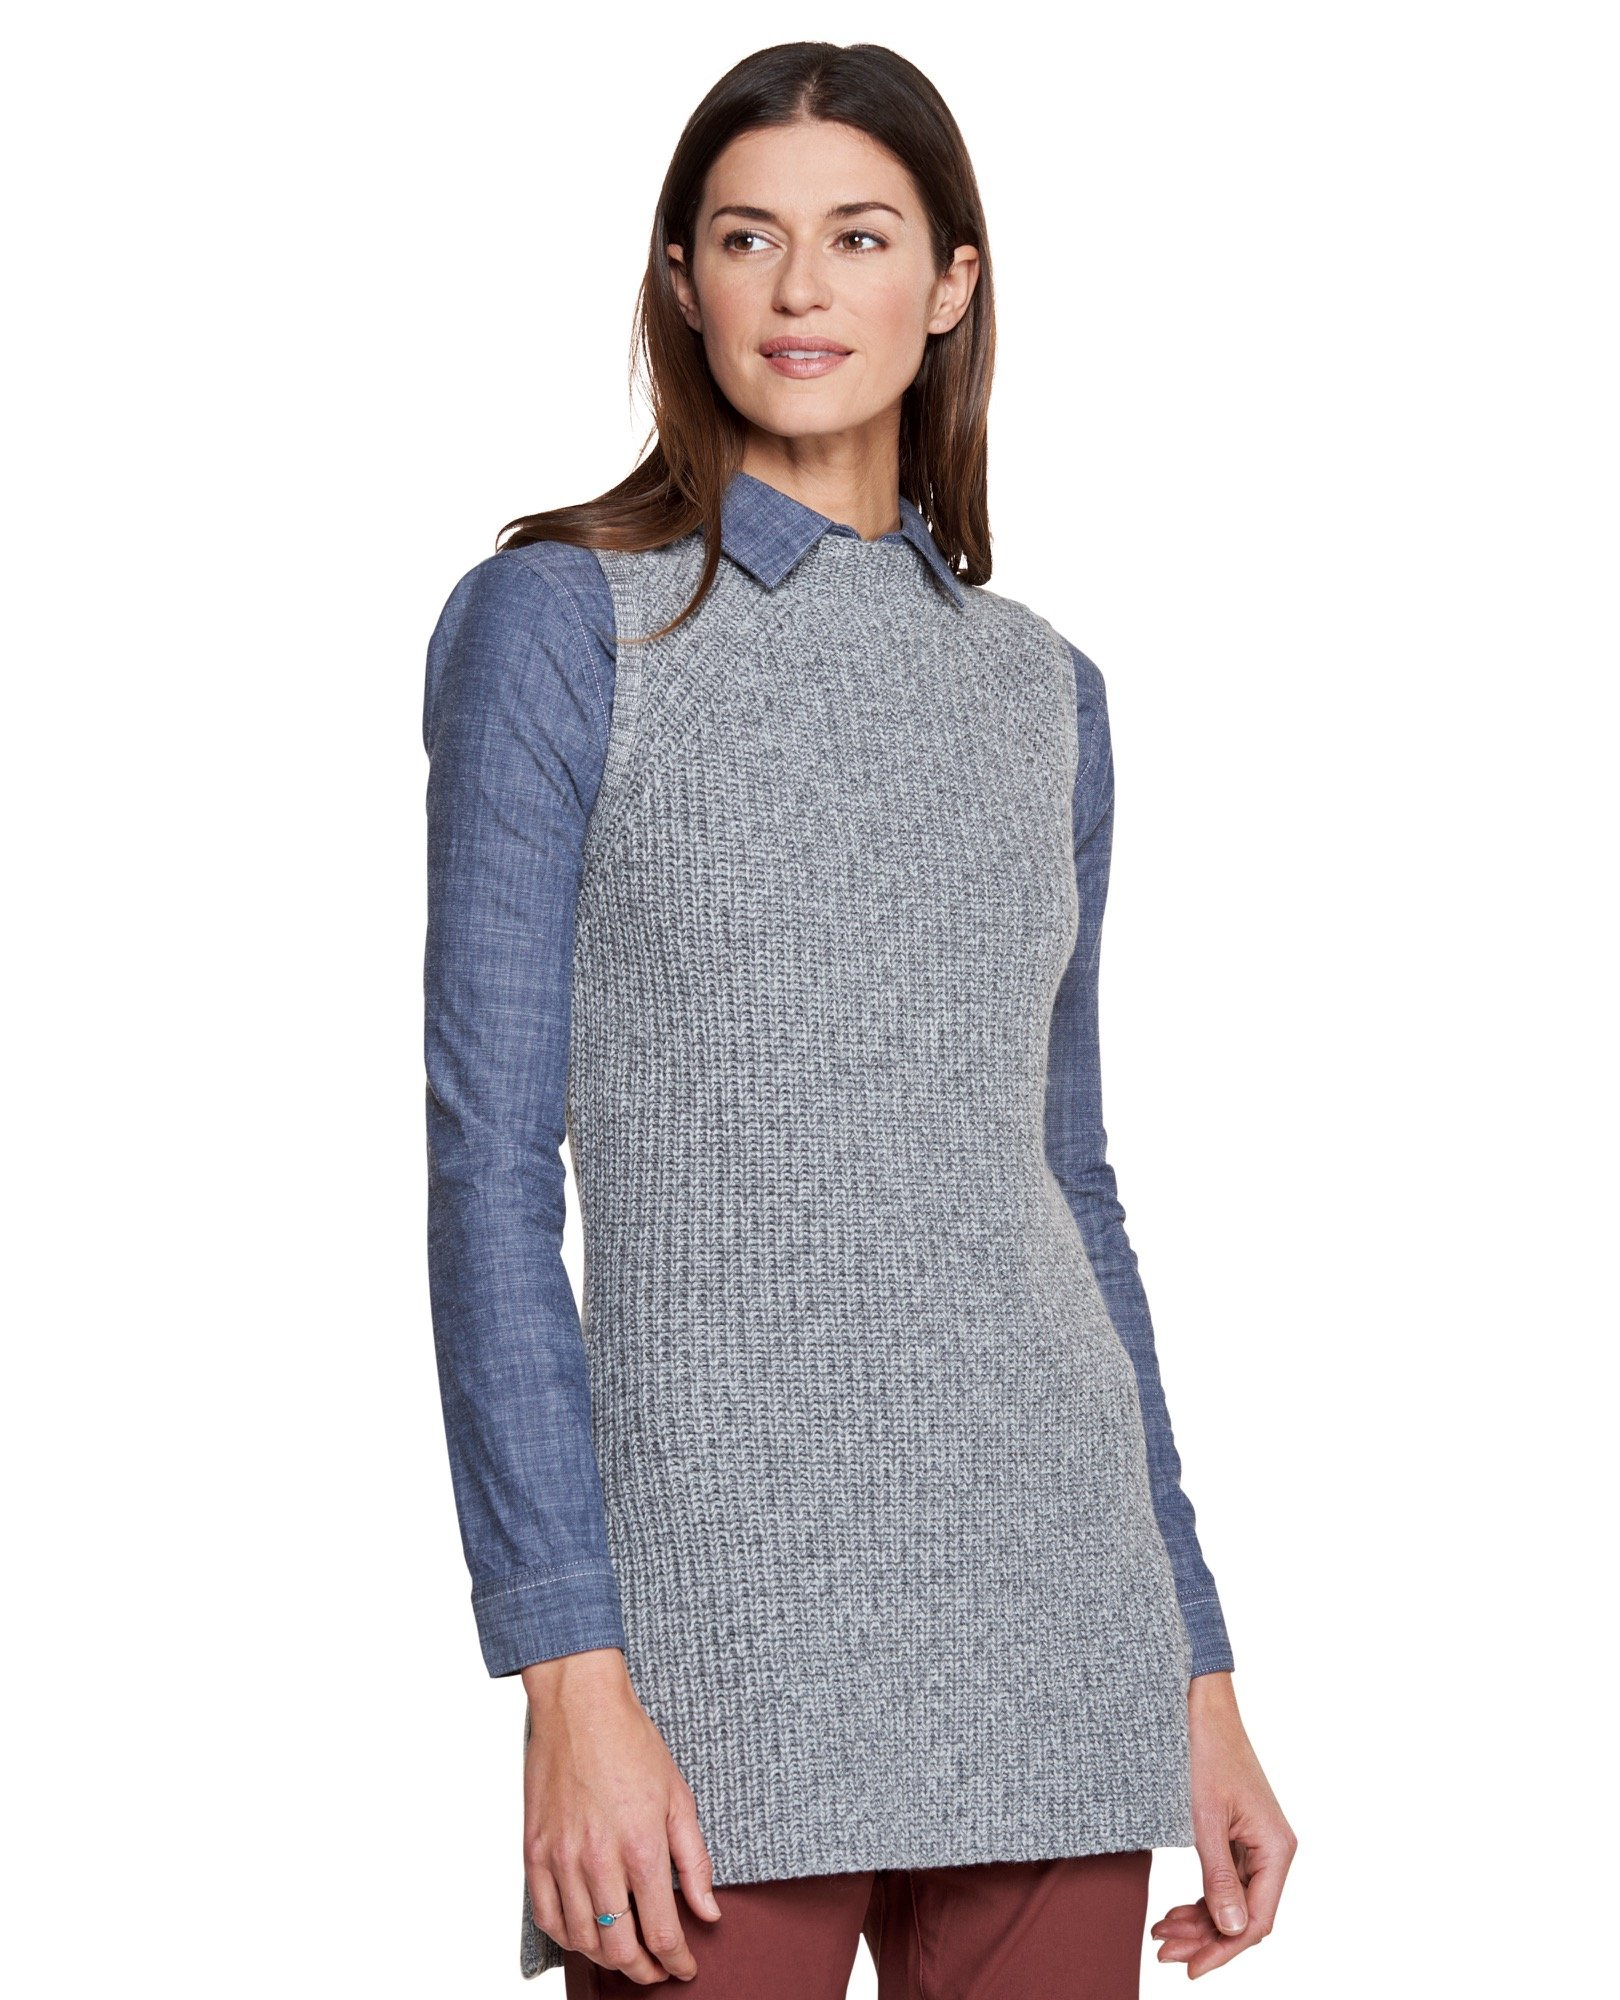 Toad&Co Women's Makenna Sweater Vest, Charcoal Heather, Small